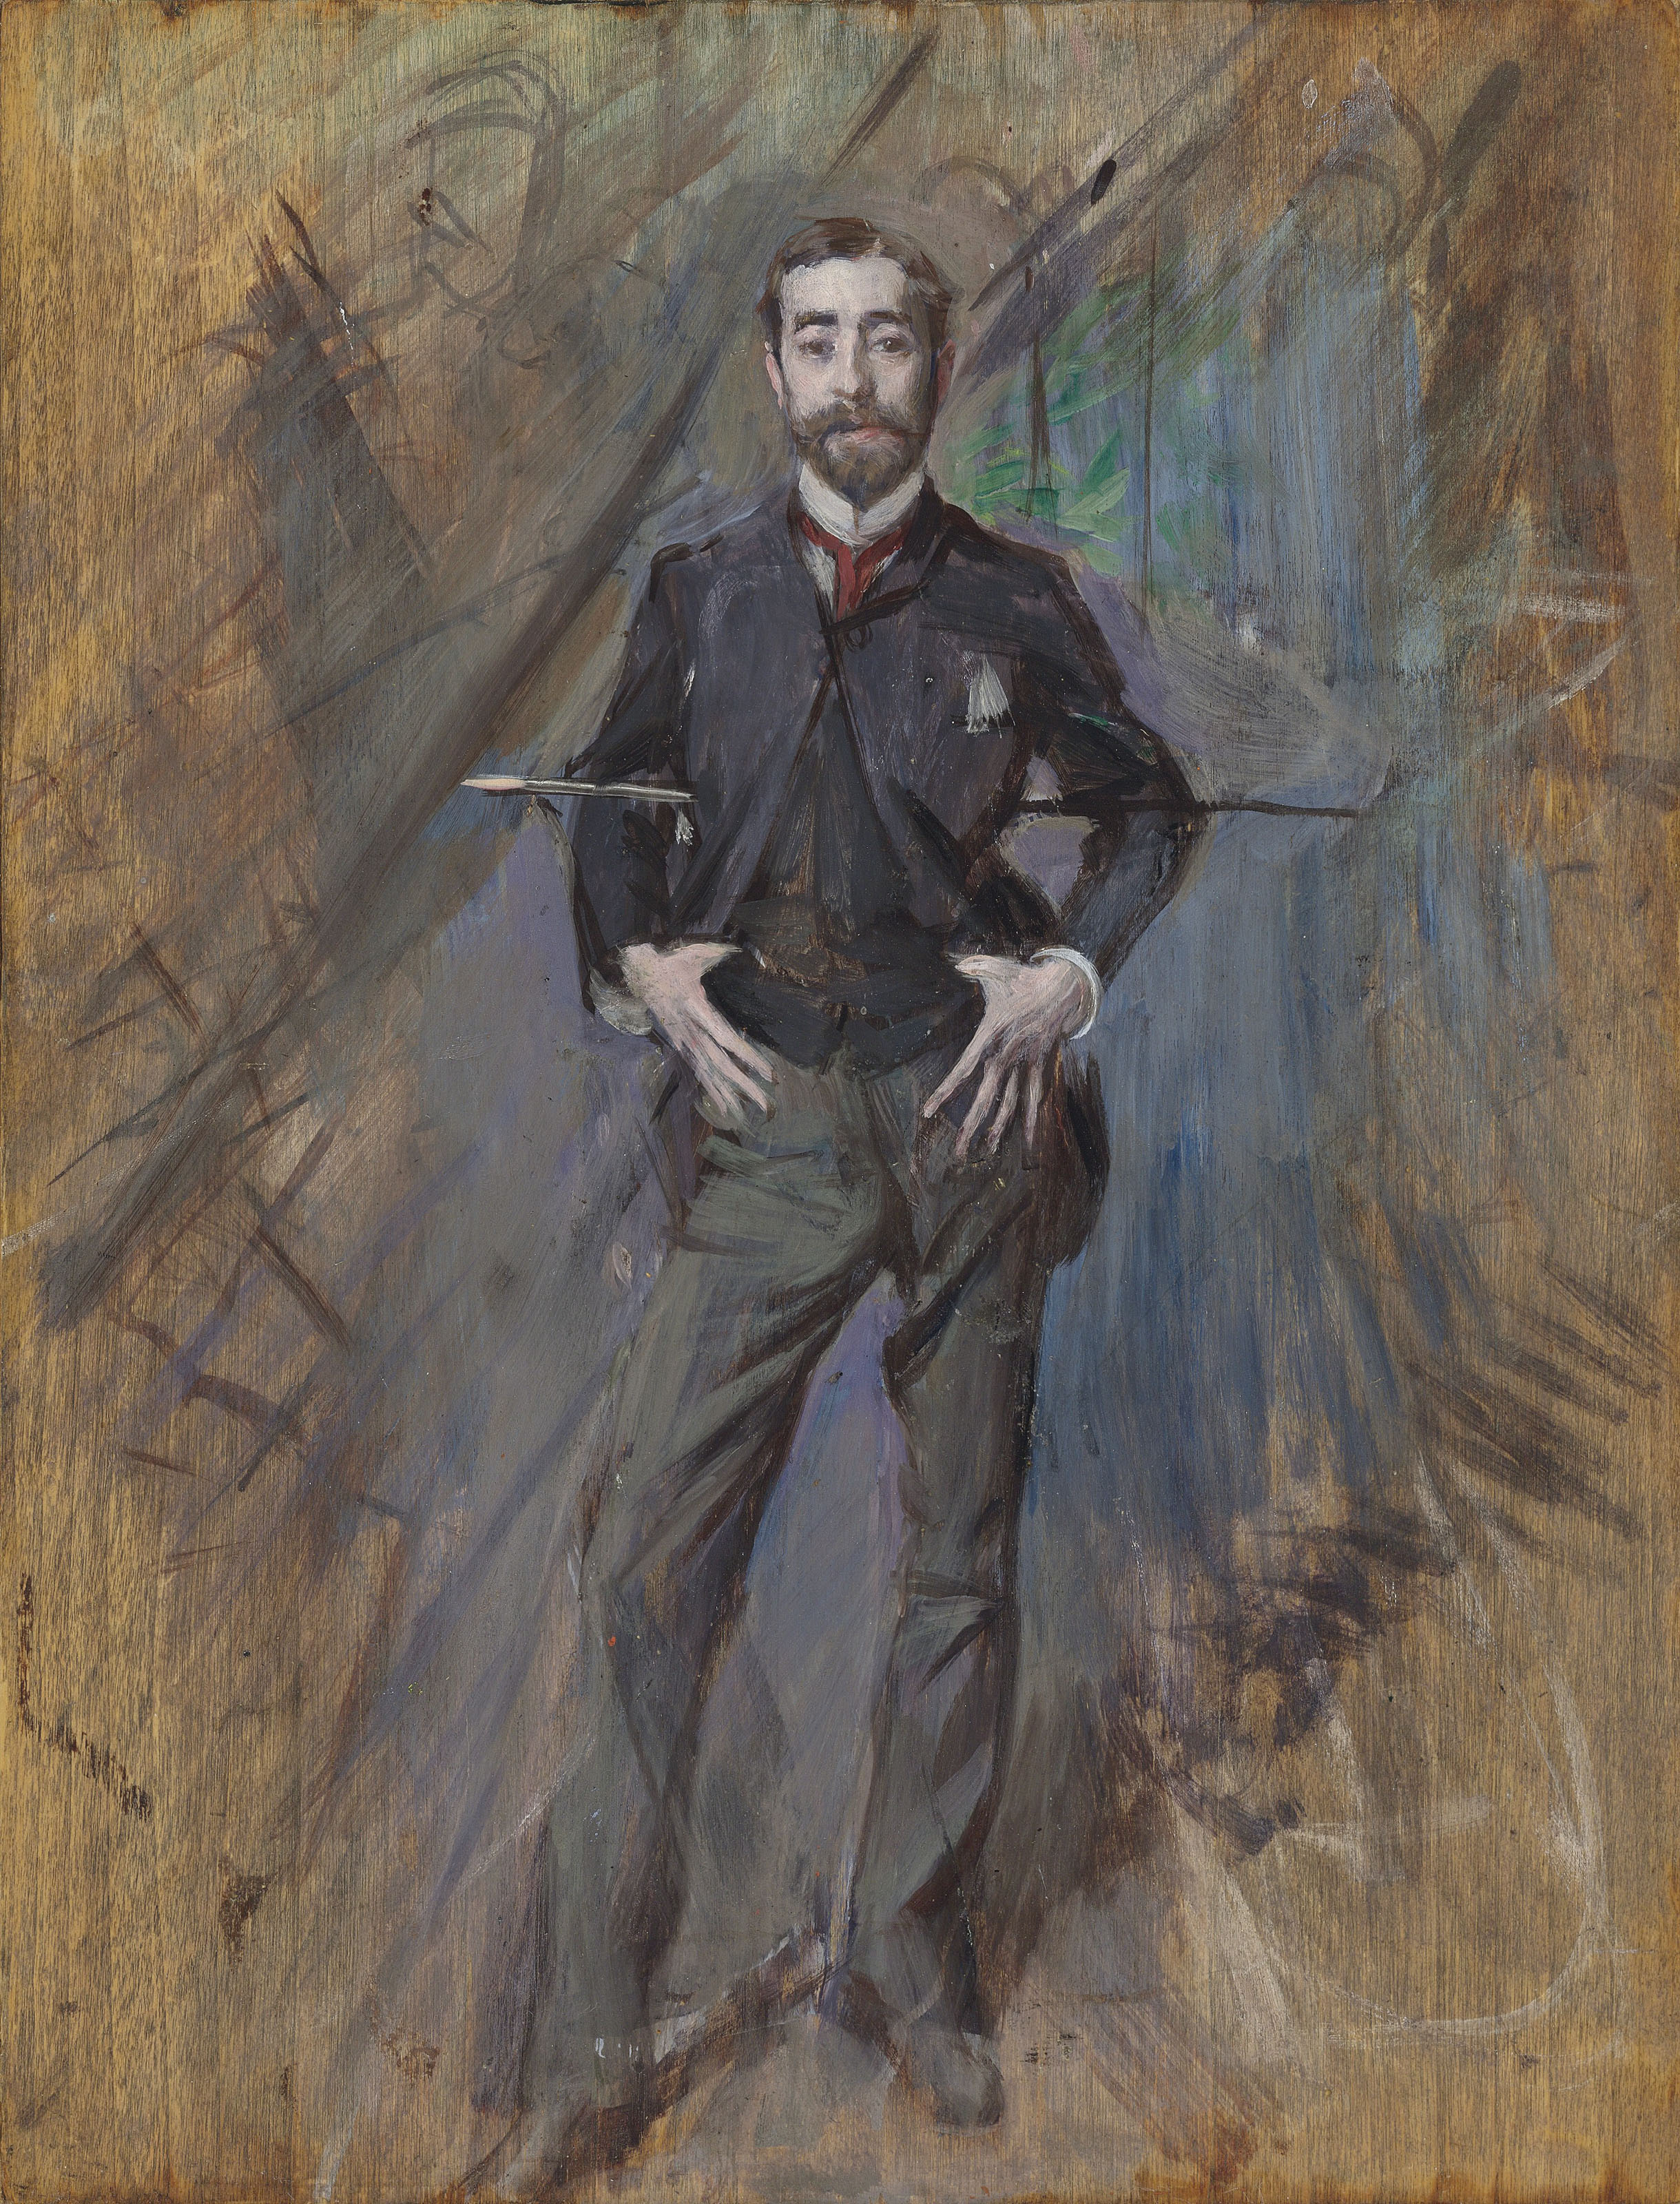 A charming portrait of John Singer Sargent, rendered by Boldini, is the eighth most expensive lot showcased on The Hot Bid in 2019.